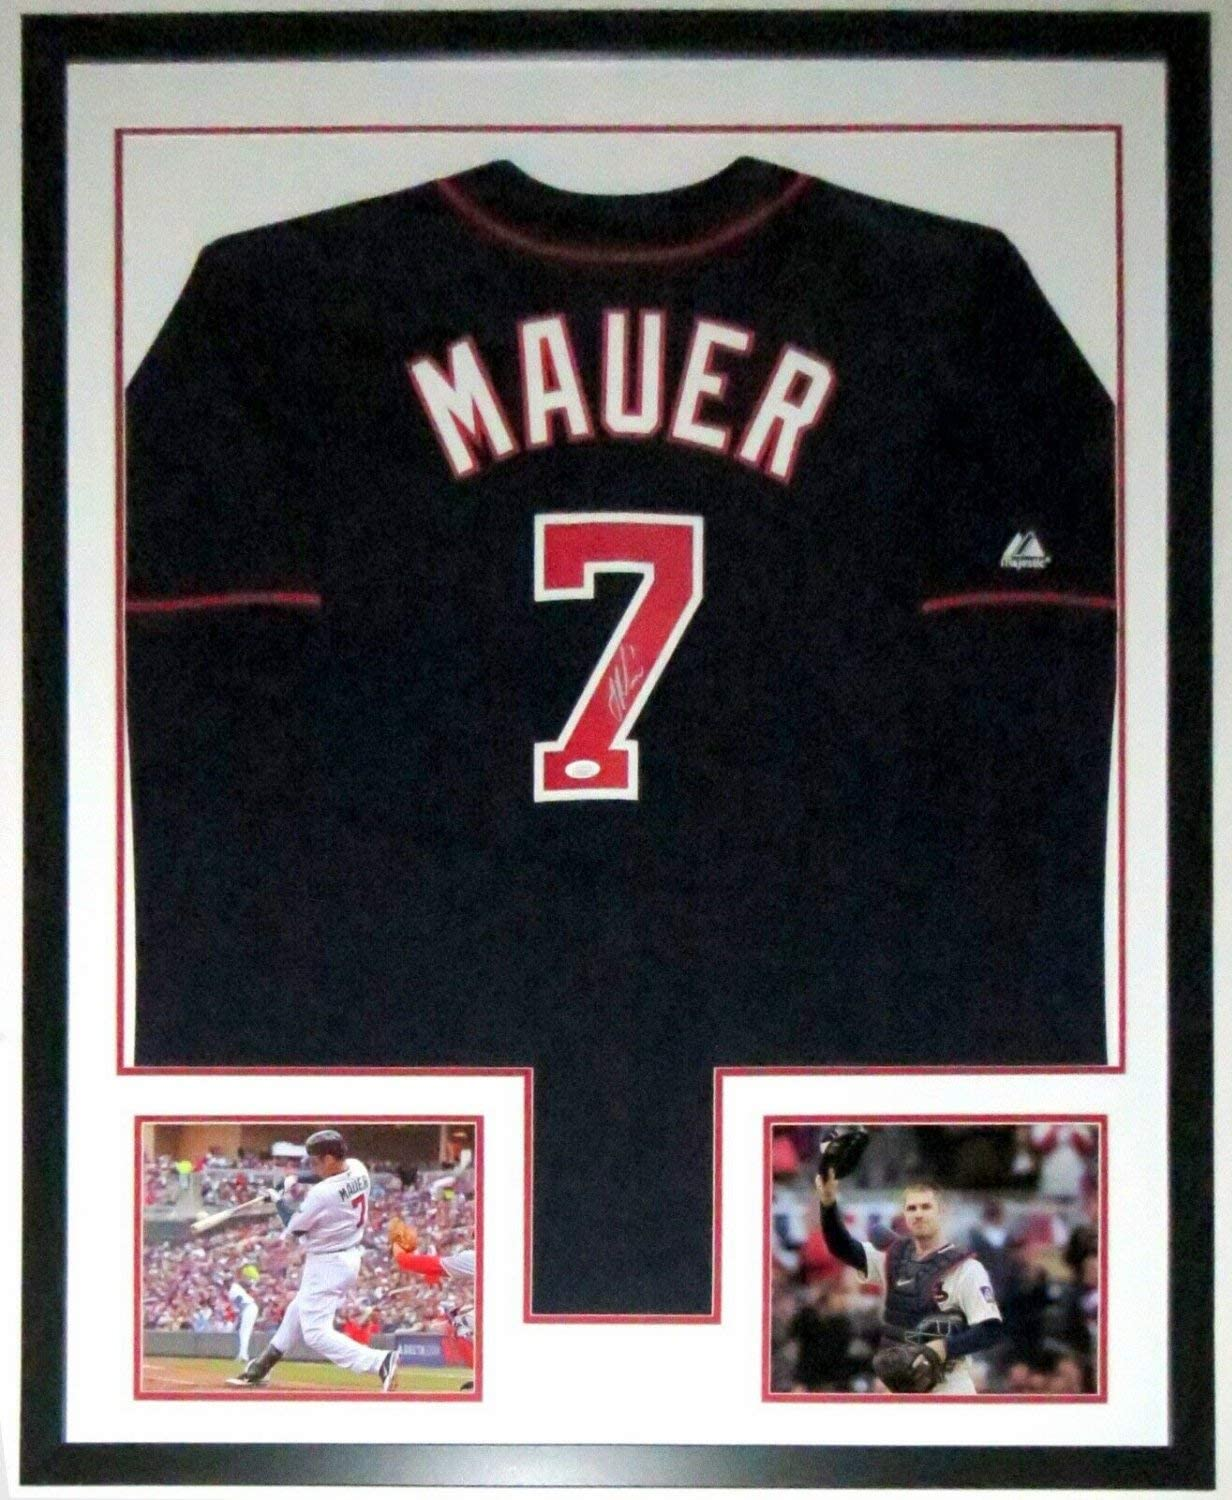 Joe Mauer Autographed Signed Twins Jersey JSA COA Authentic Custom Framed 2 8X10 Phot0